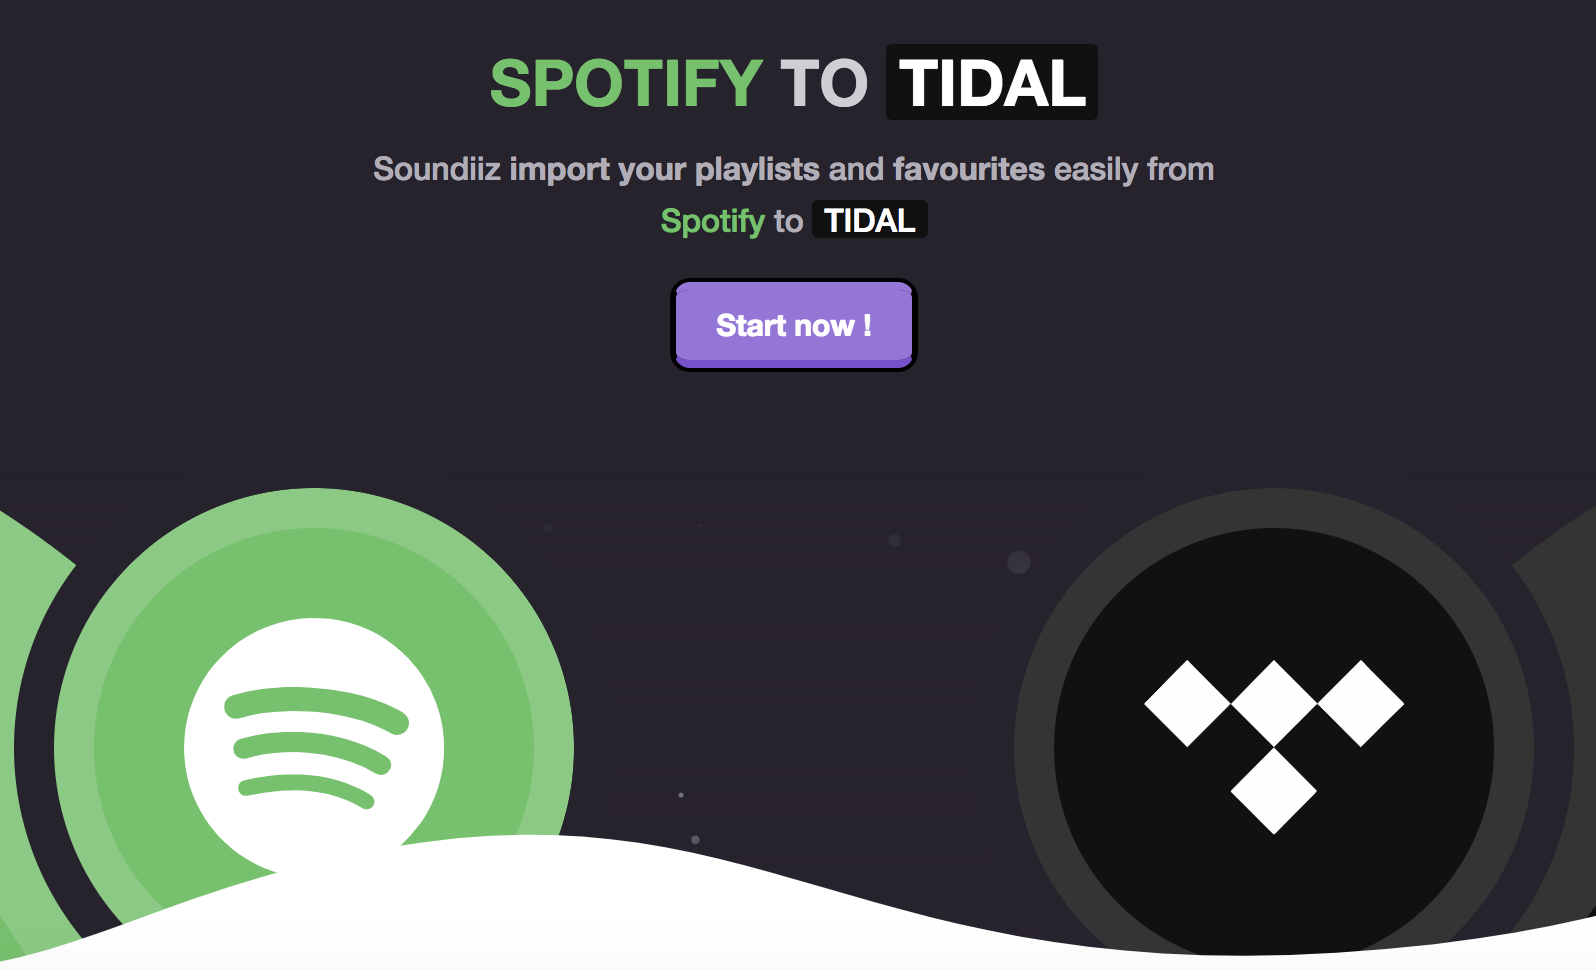 Spotify to Tidal - How to Transfer Spotify Playlists to Tidal